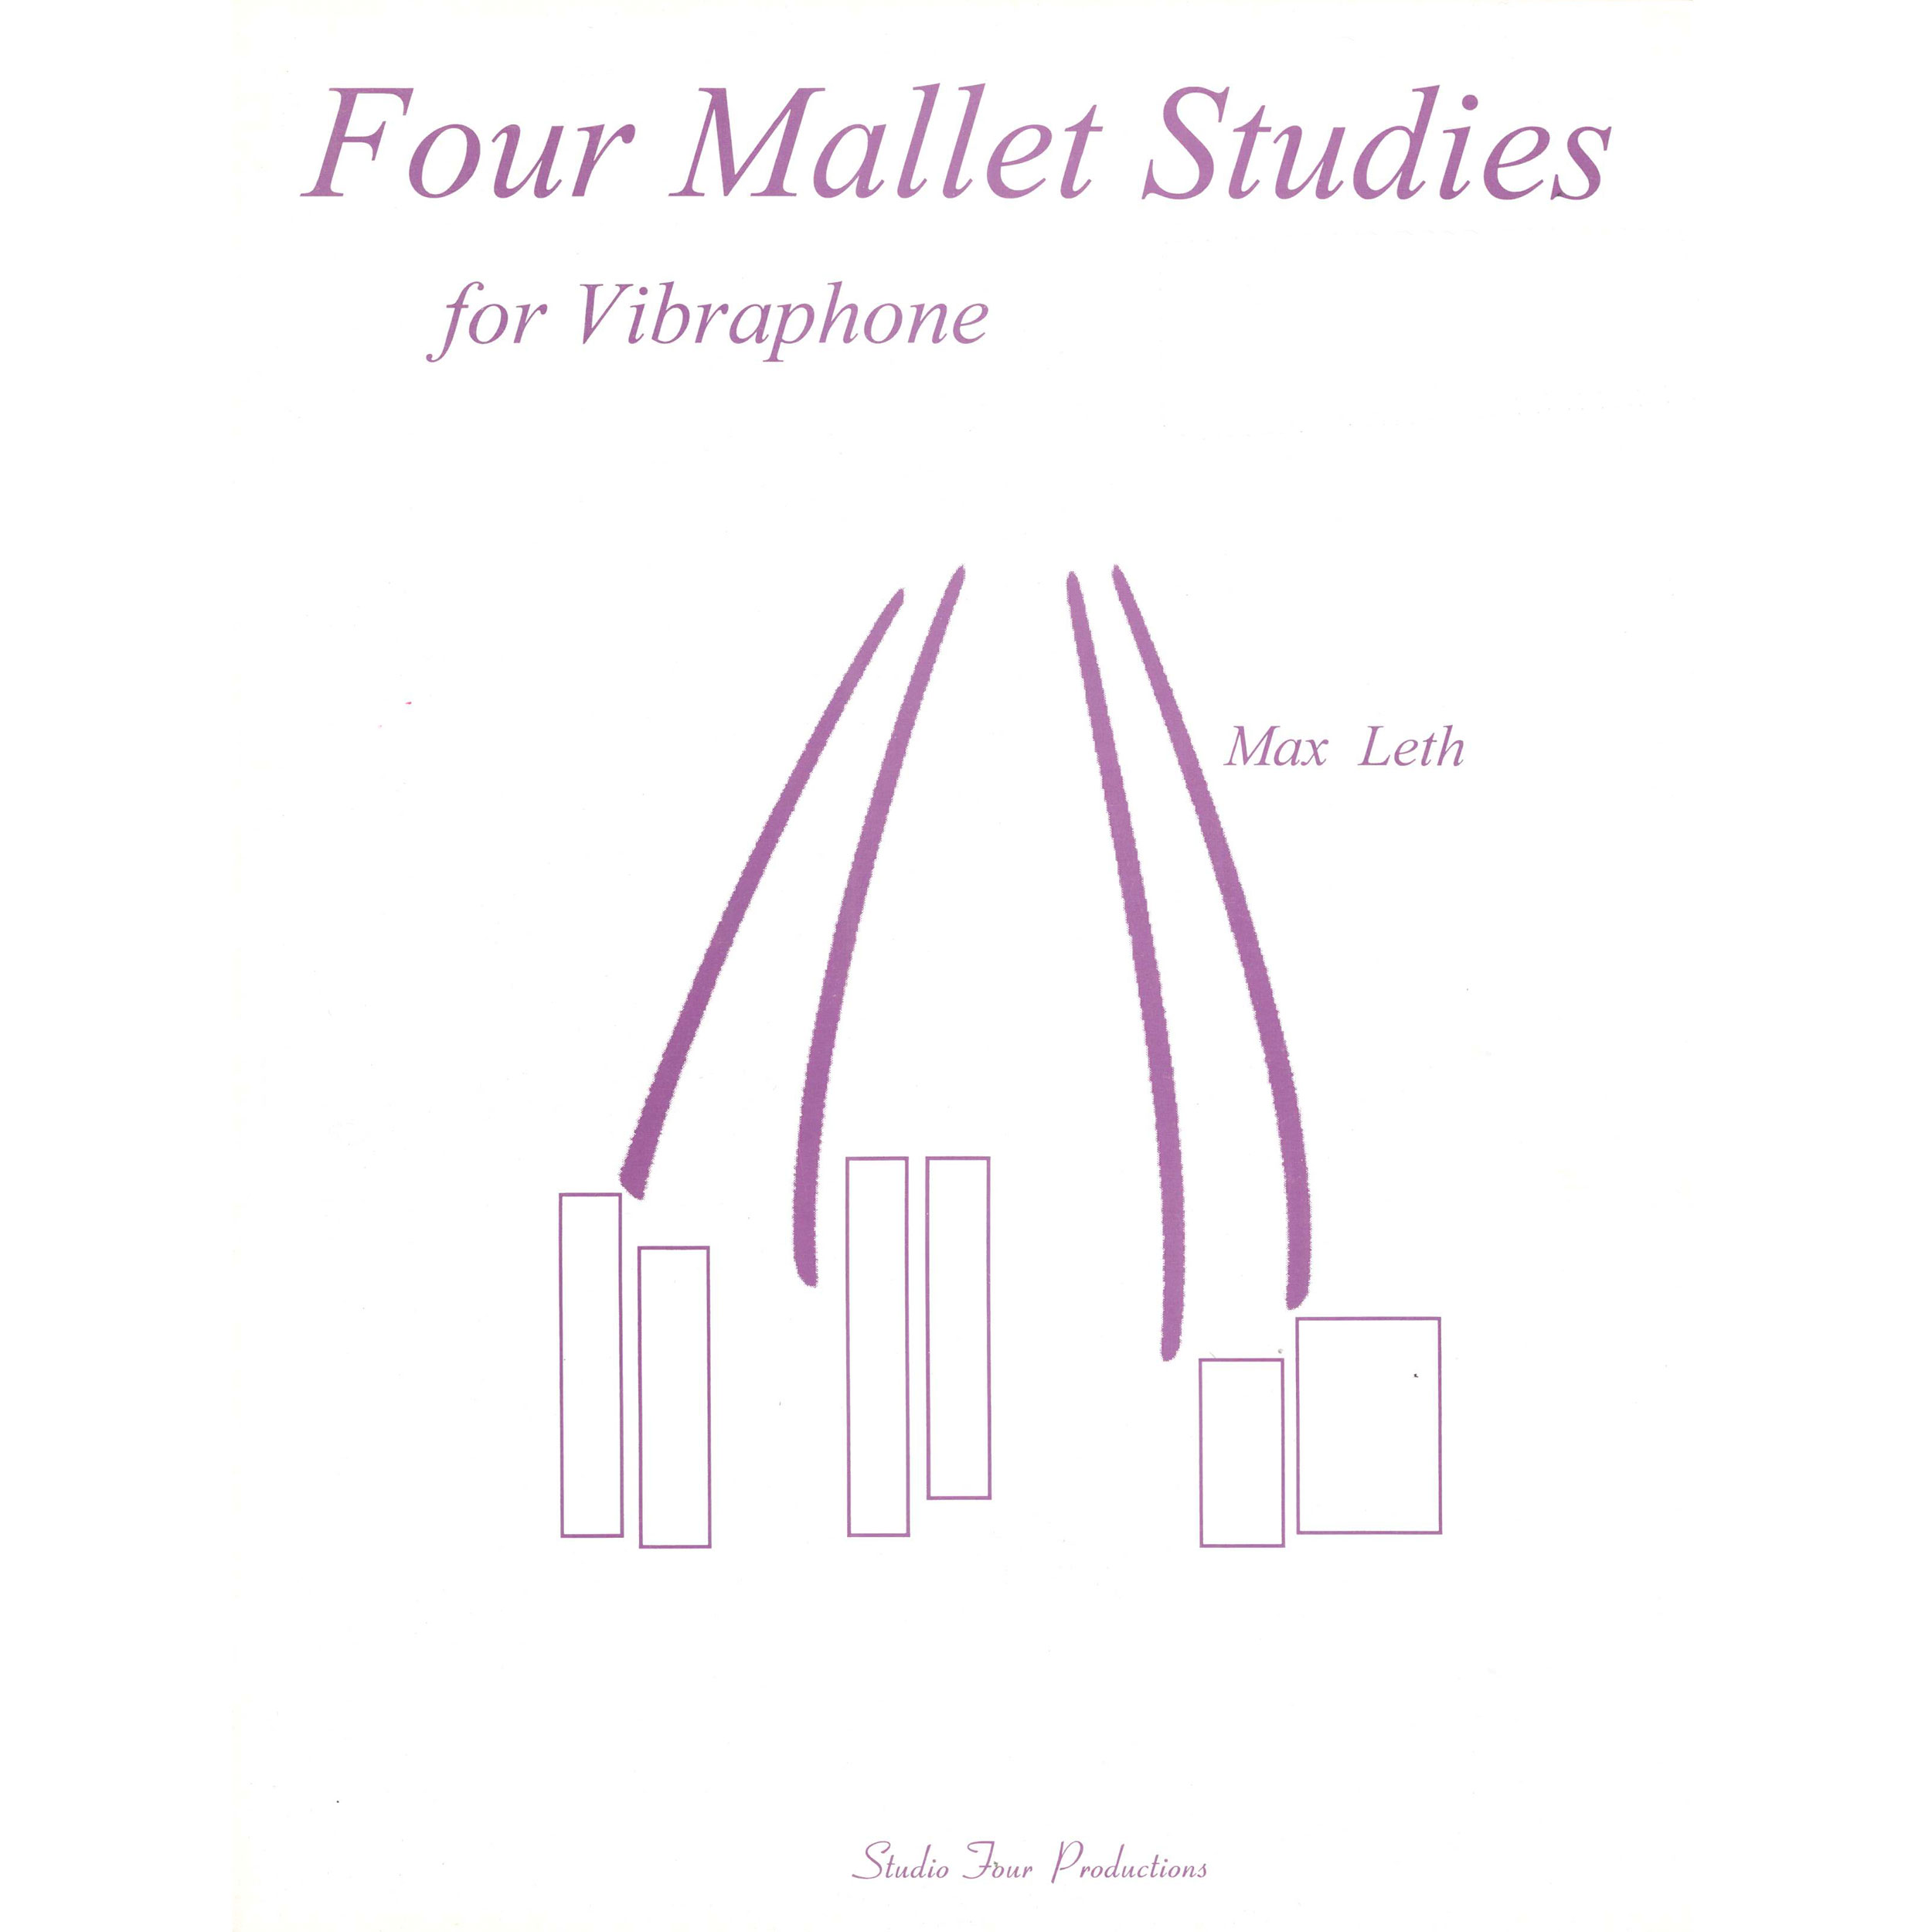 Four-mallet Studies for Vibraphone by Max Leth